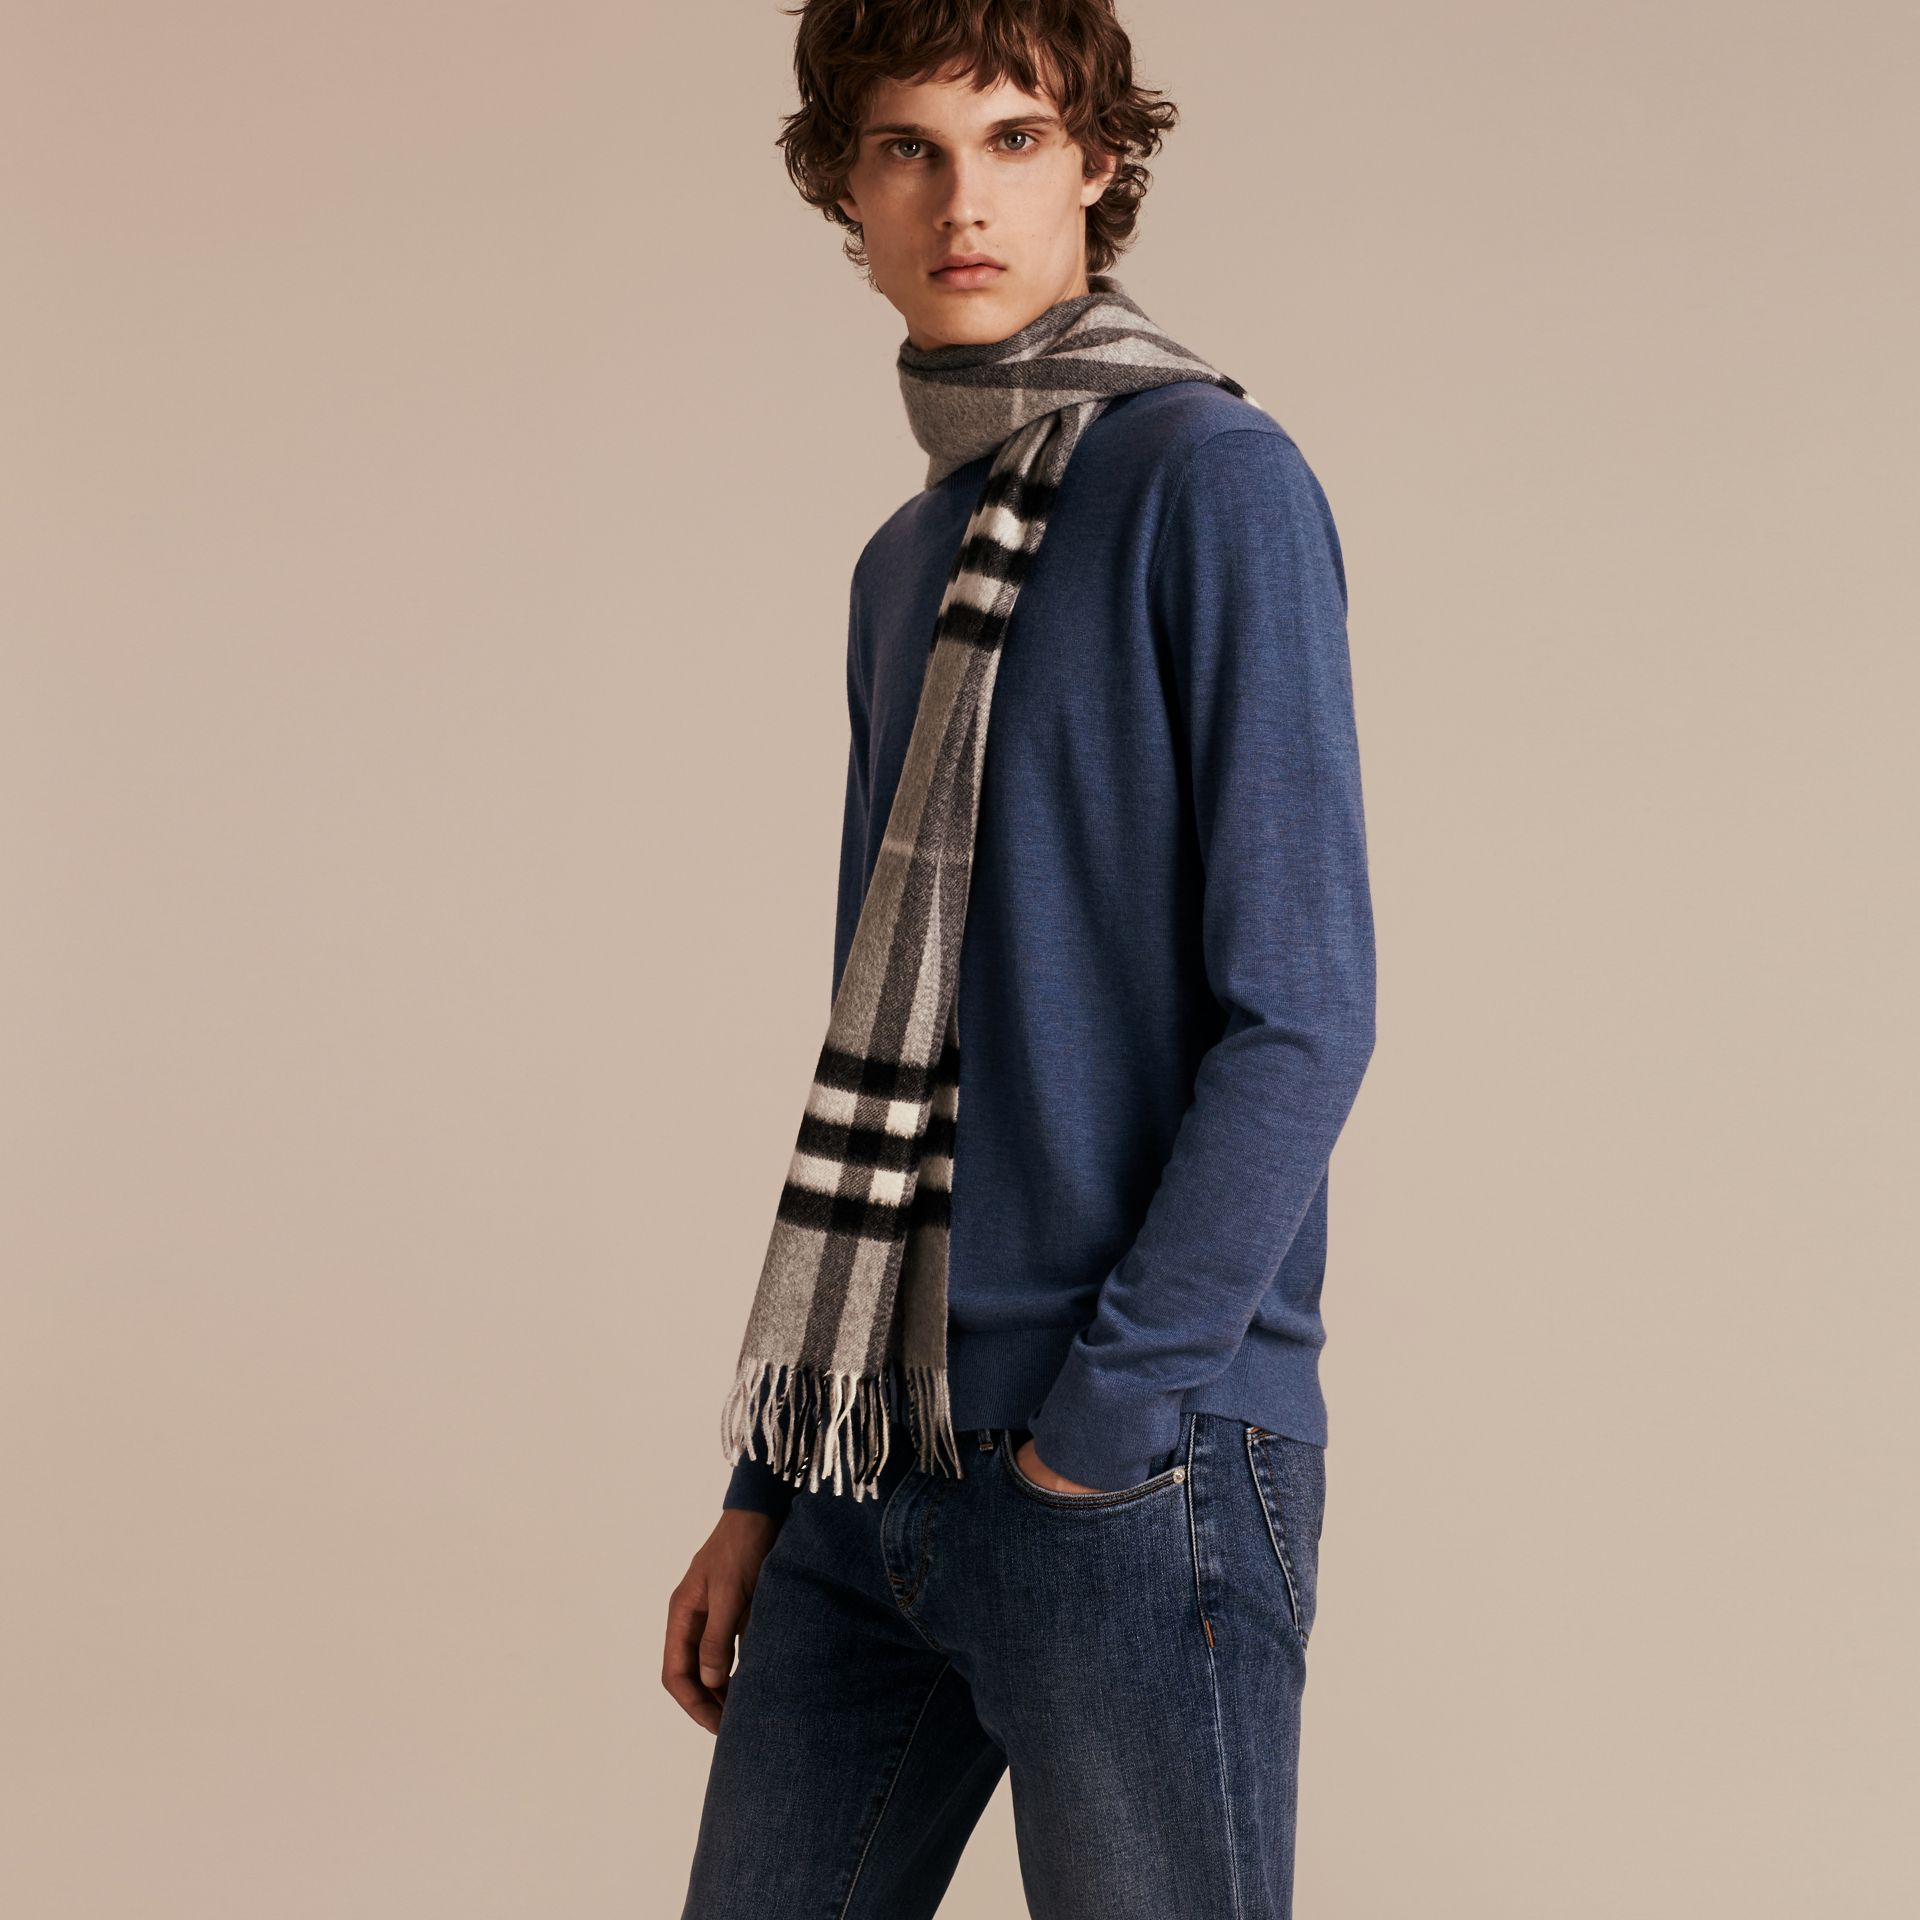 Lightweight Crew Neck Cashmere Sweater with Check Trim in Dusty Blue - Men | Burberry - gallery image 6